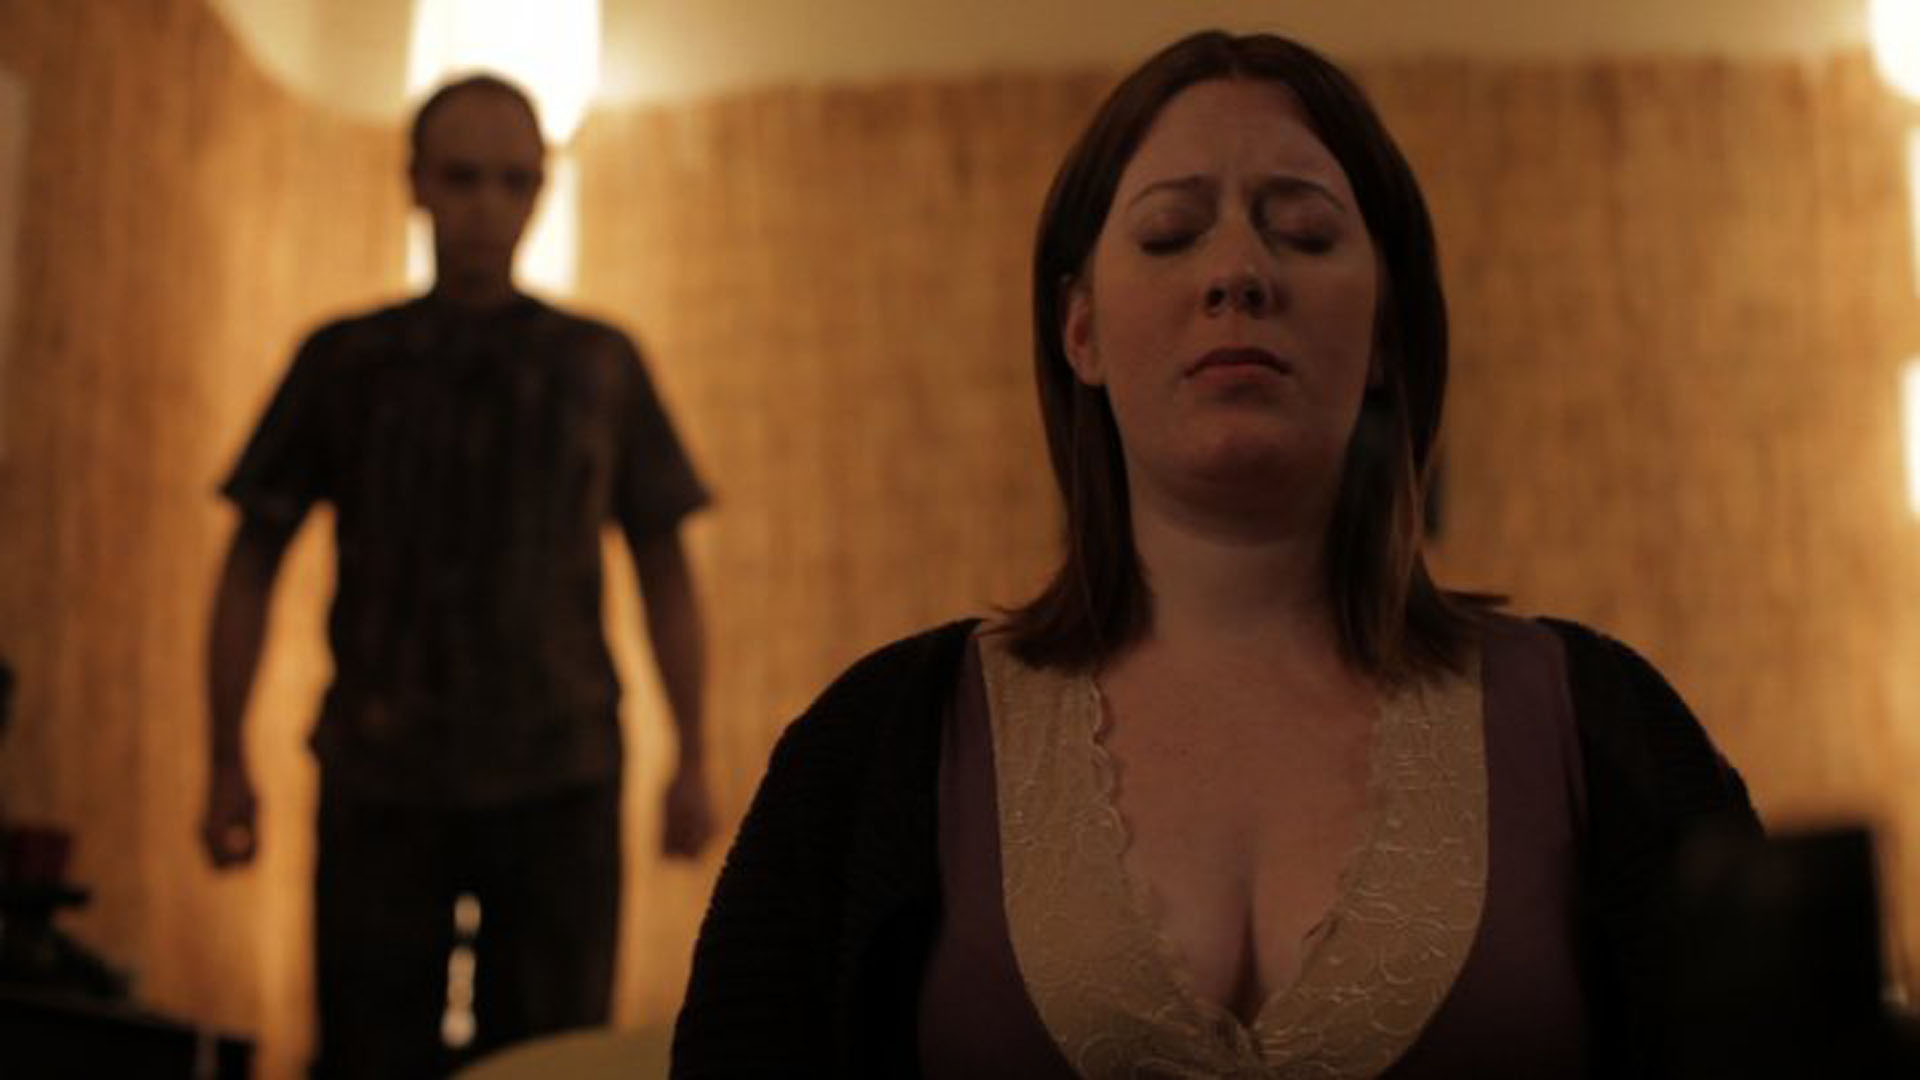 Morgan Peter Brown reappears to Courtney Bell in Absentia (2011)